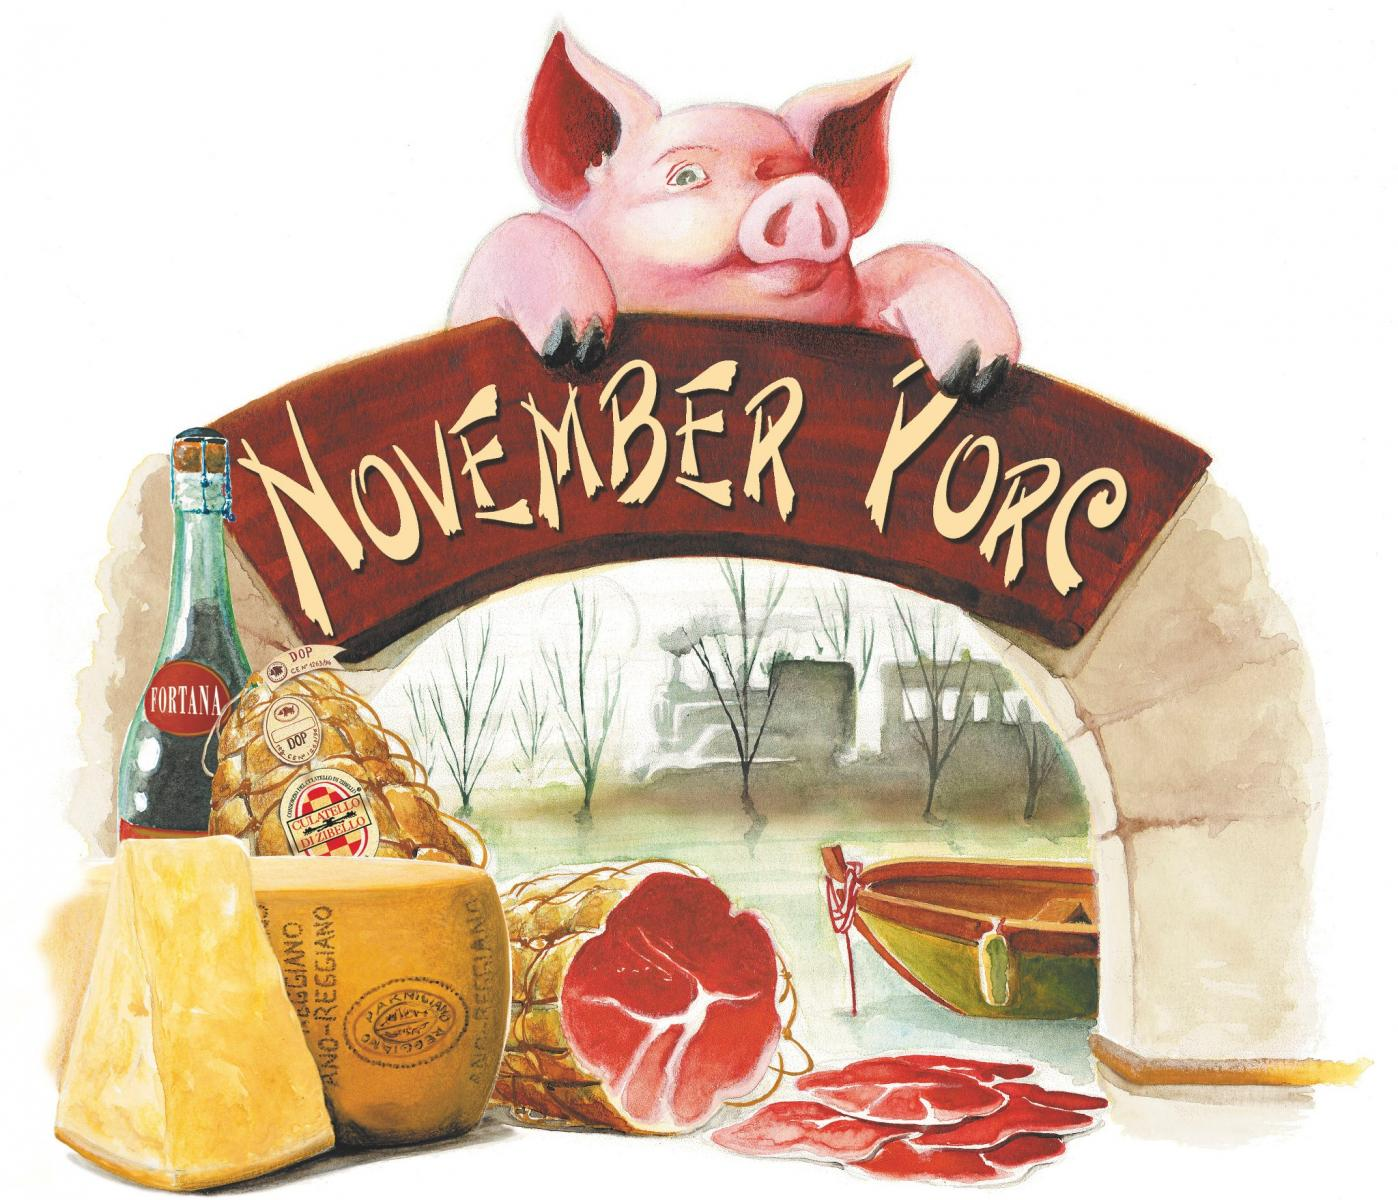 November Porc 2015, la Confraternita non mancherà